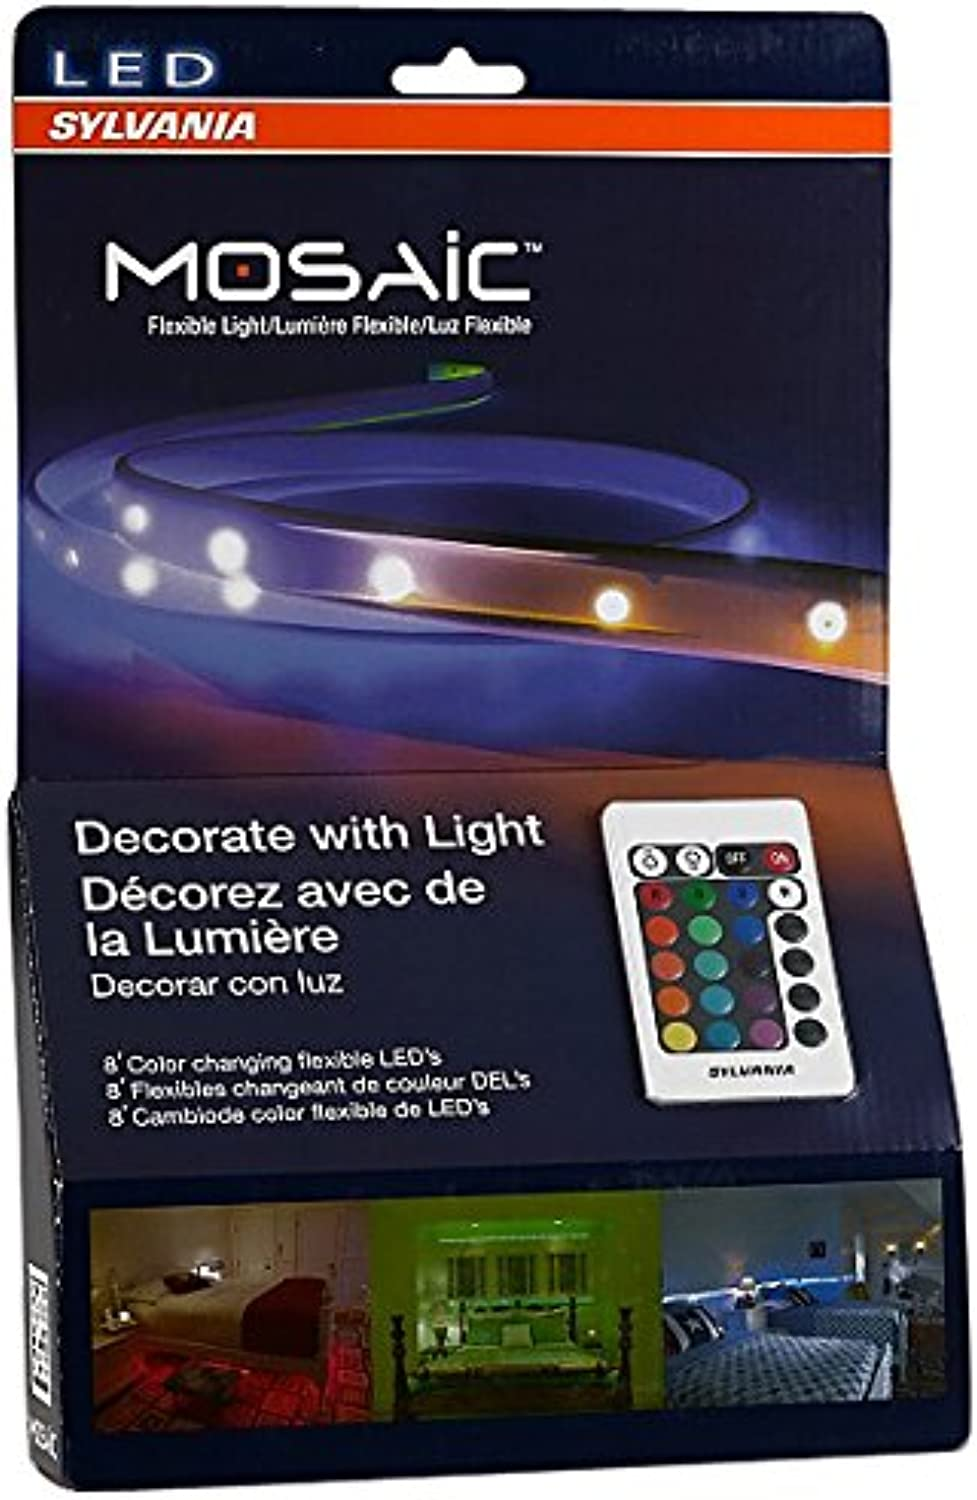 Sylvania Home Lighting 72344 Mosaic Flexible Light Kit, Led, White